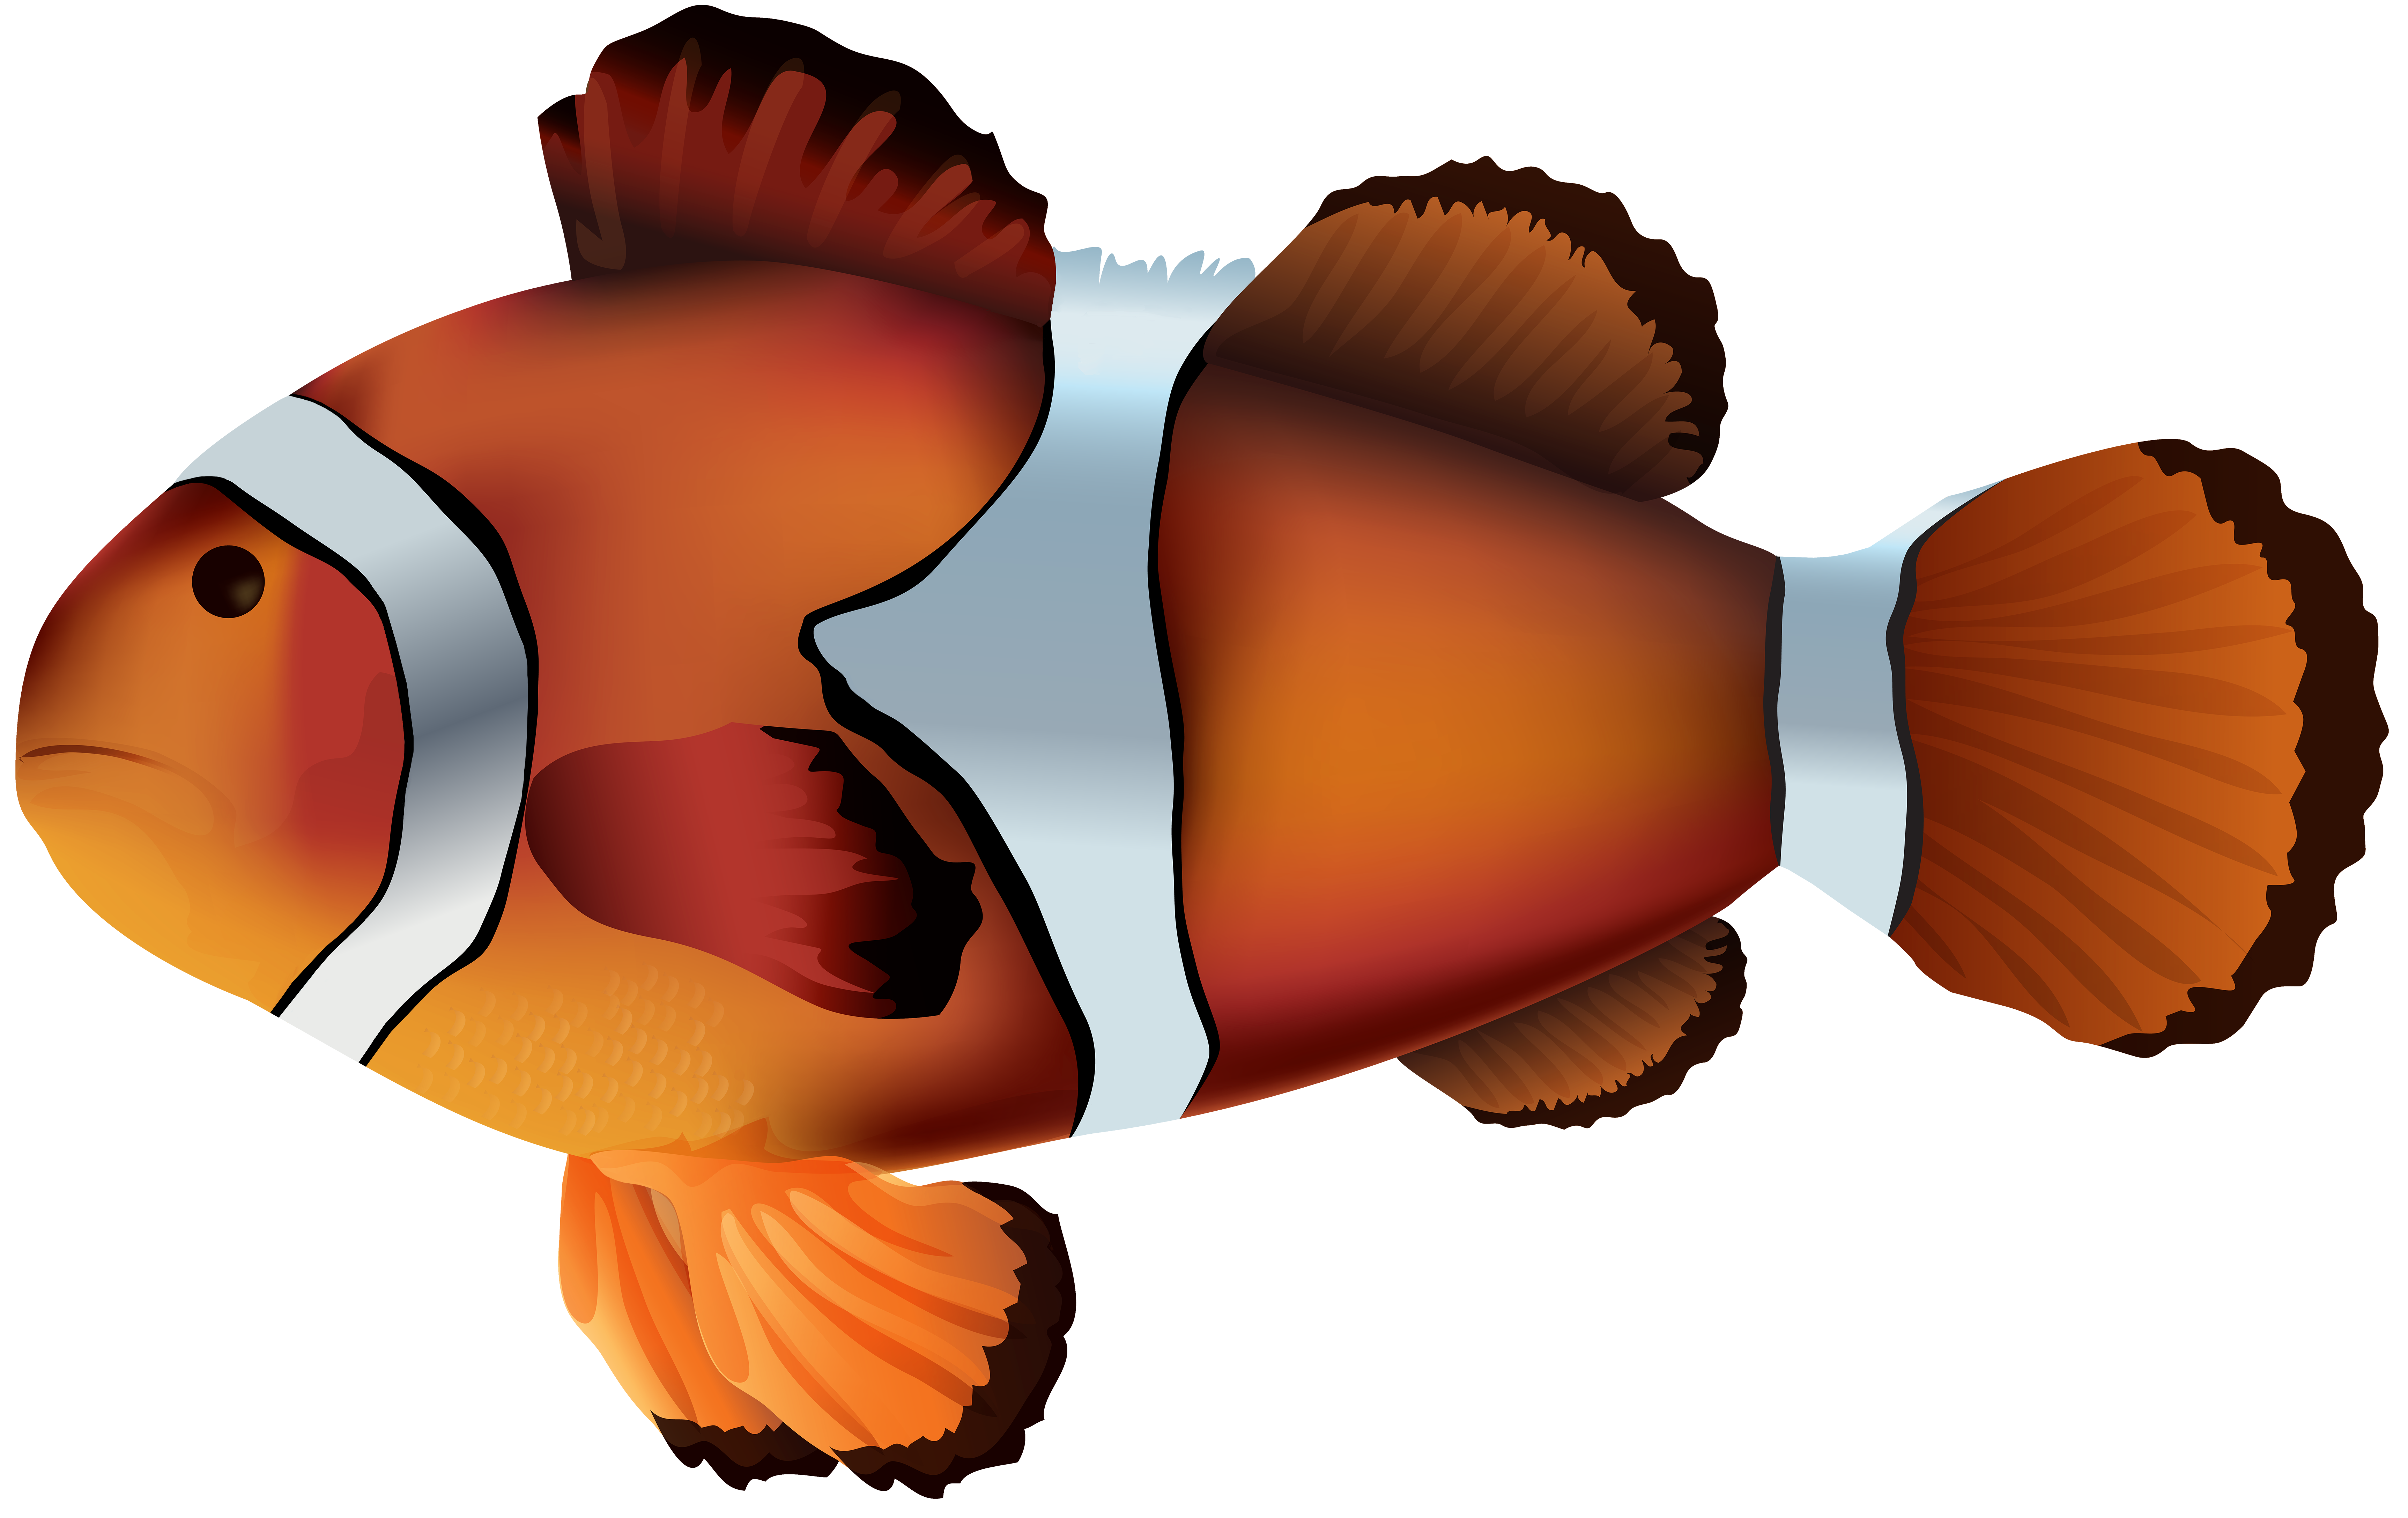 Clown Fish Clipart at GetDrawings.com | Free for personal use Clown ...